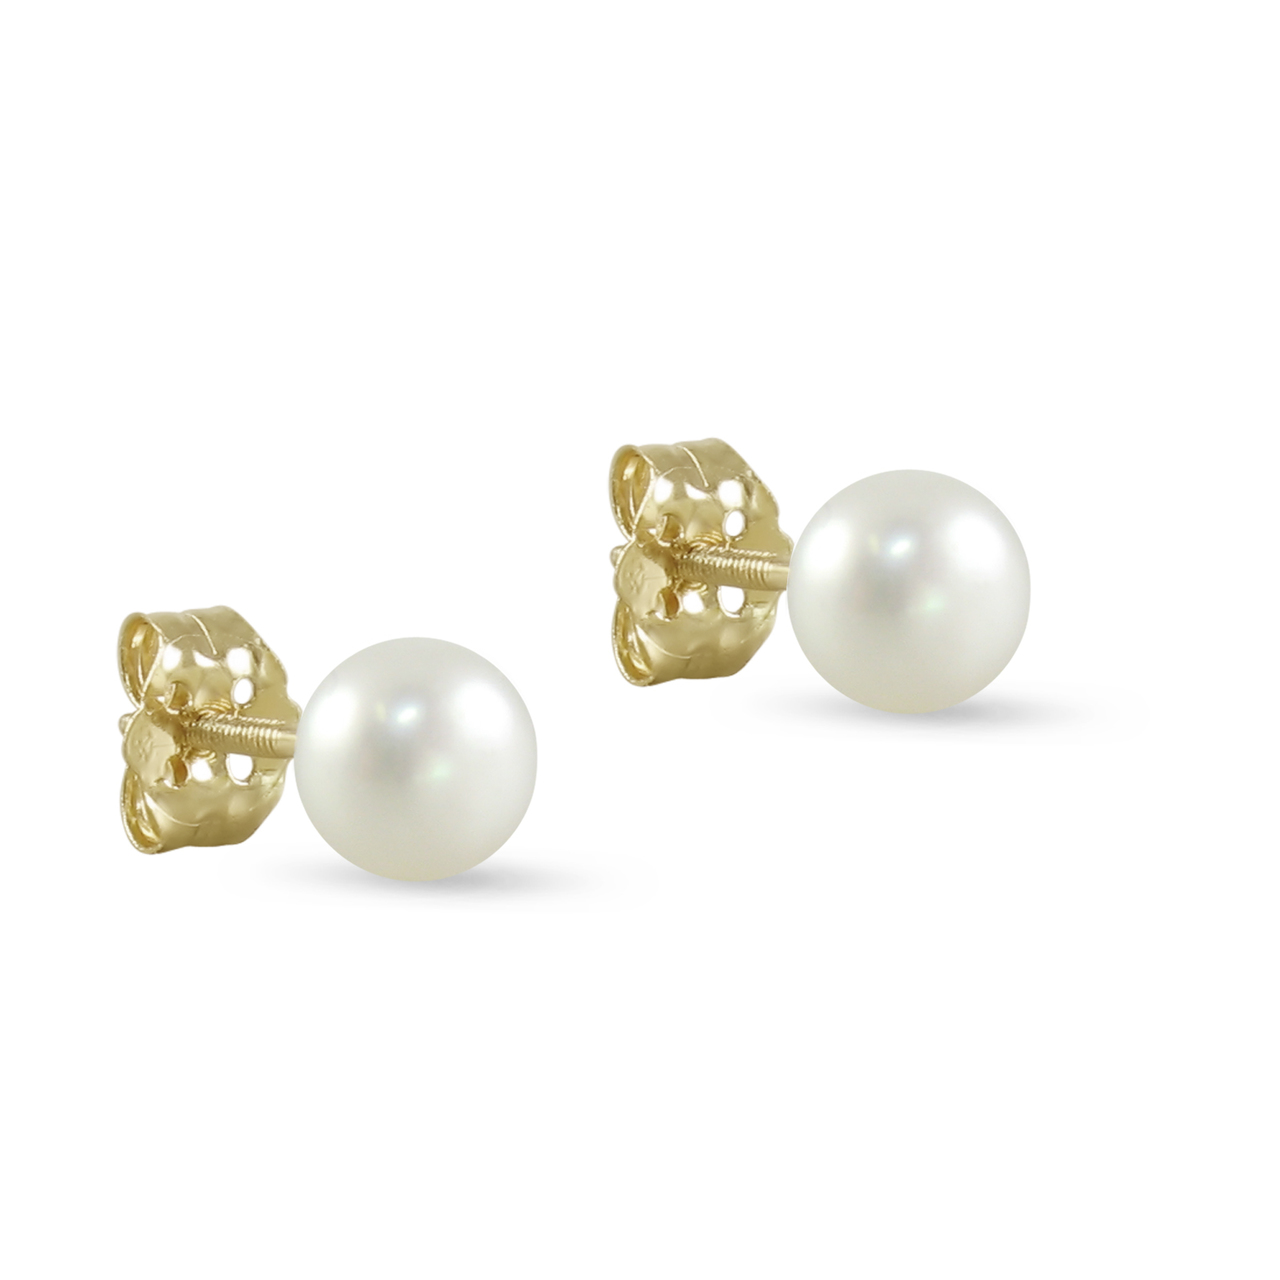 373caed37 10K Yellow Gold Freshwater Cultured White 4 - 4.5mm Button Pearl Stud  Earrings Screw Back